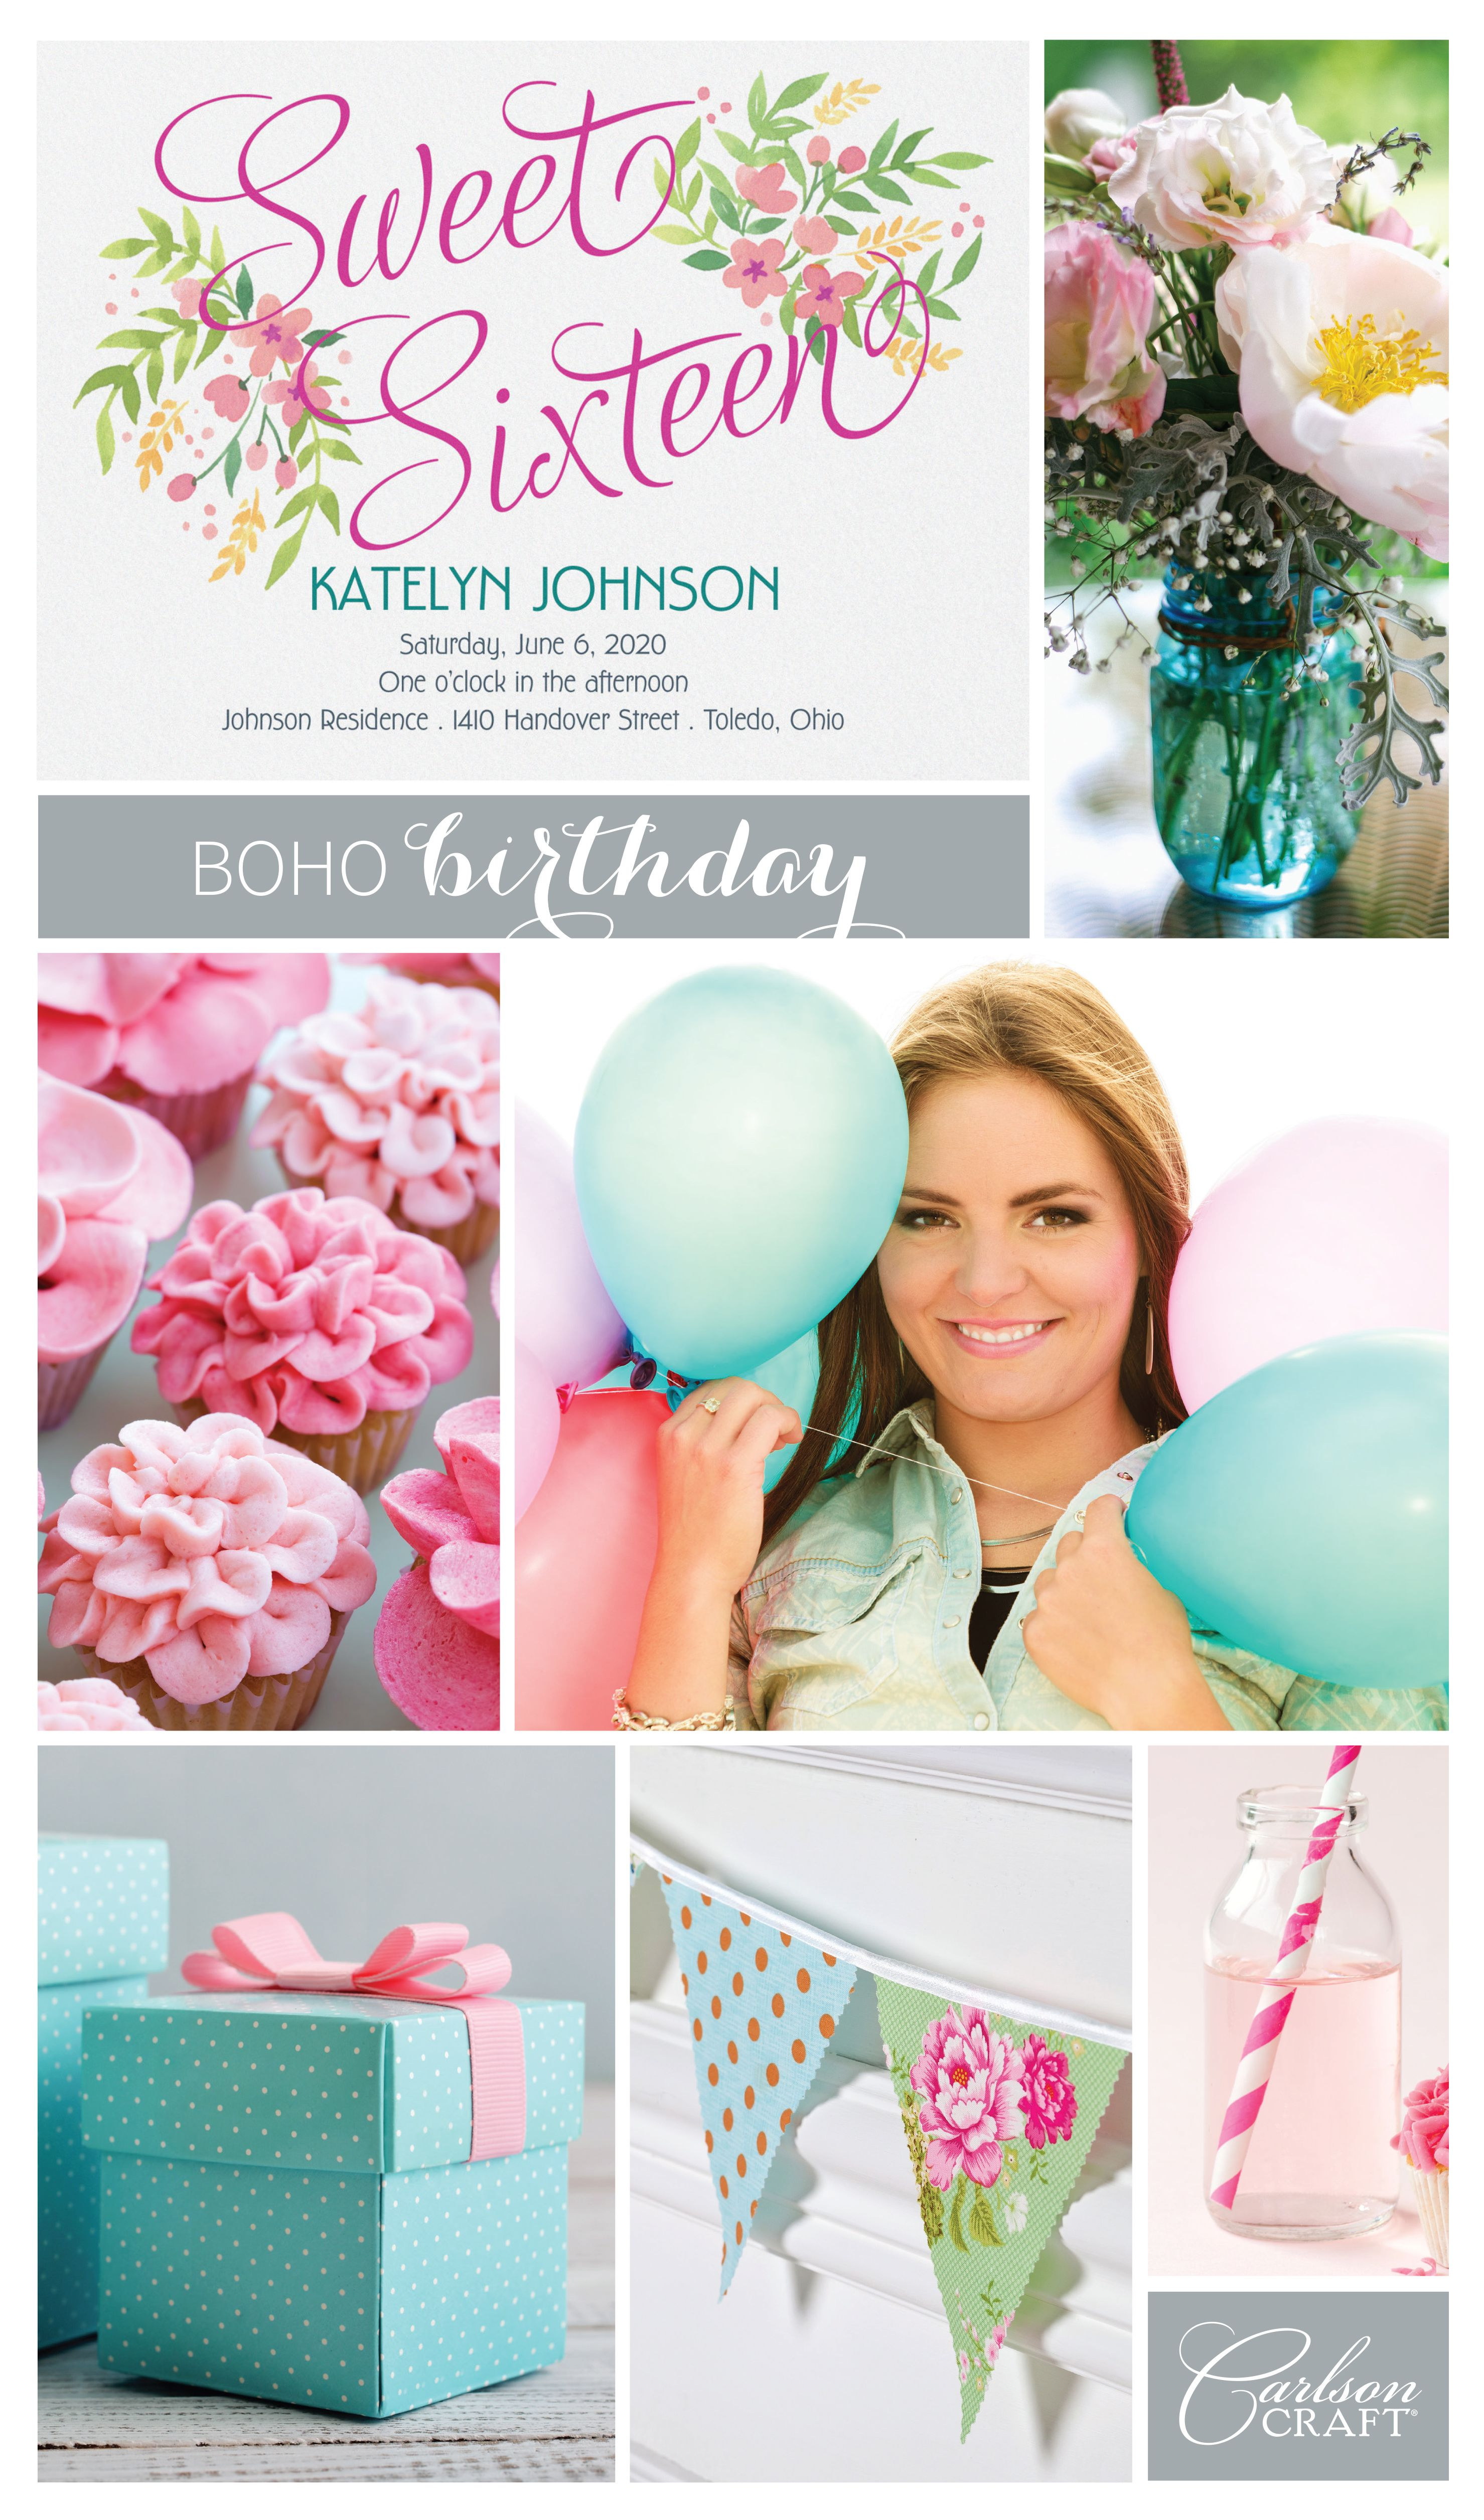 Birthdays Are Something Special To Be Celebrated When You Think Of Boho Probably Pastel Colors Flowers And Colorful Patterns